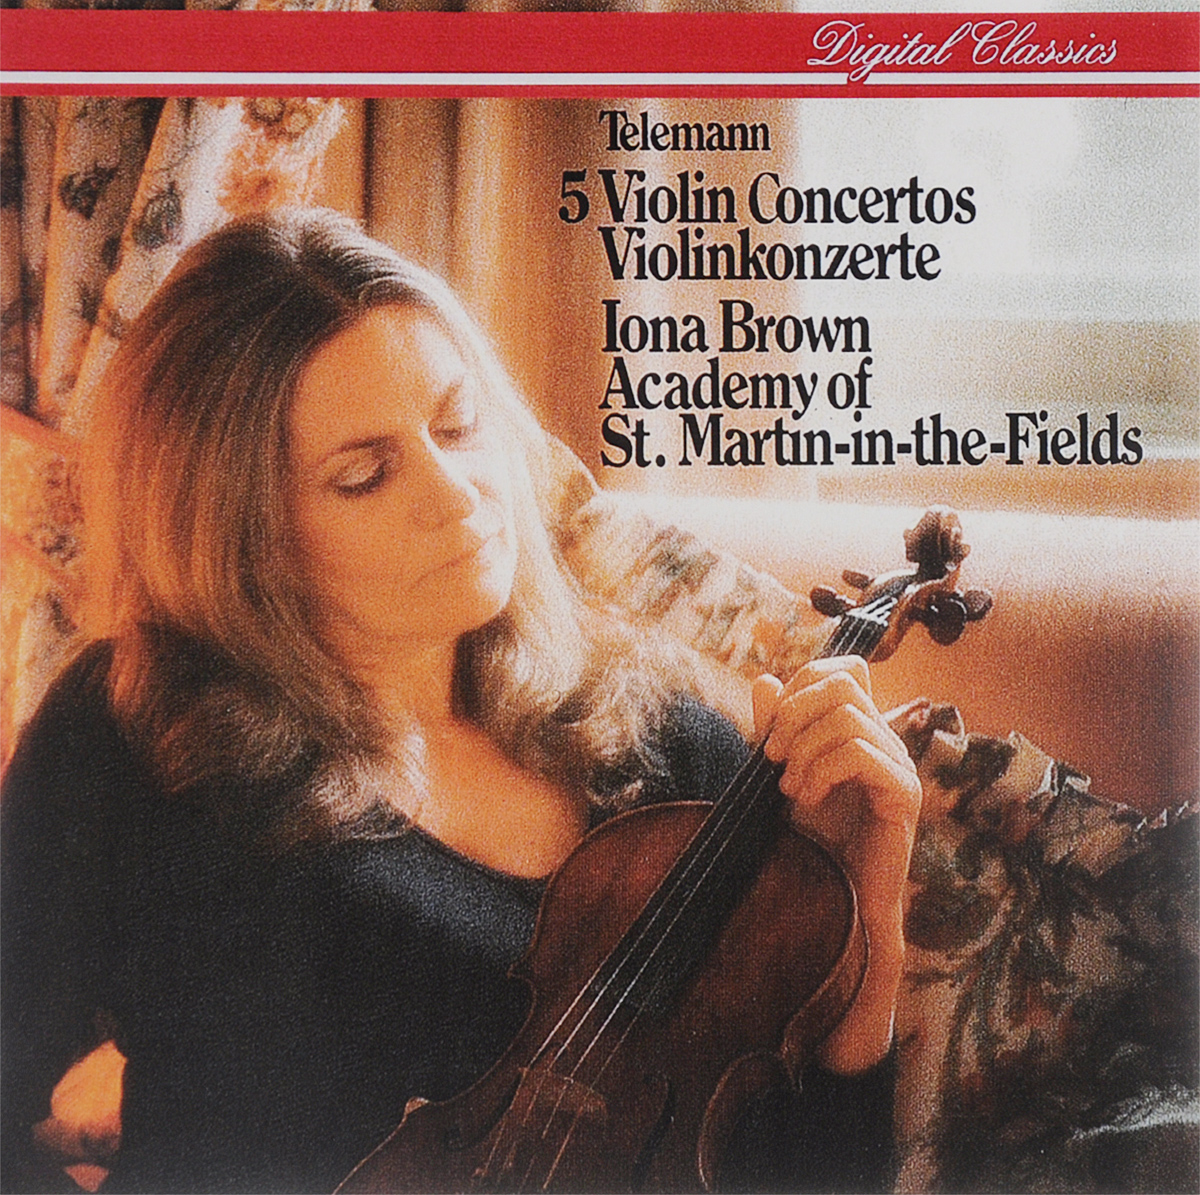 Иона Браун,Academy Of St. Martin In The Fields Iona Brown. Telemann. 5 Violin Concertos мюррей перайа academy of st martin in the fields murray perahia bach keyboard concertos nos 1 2